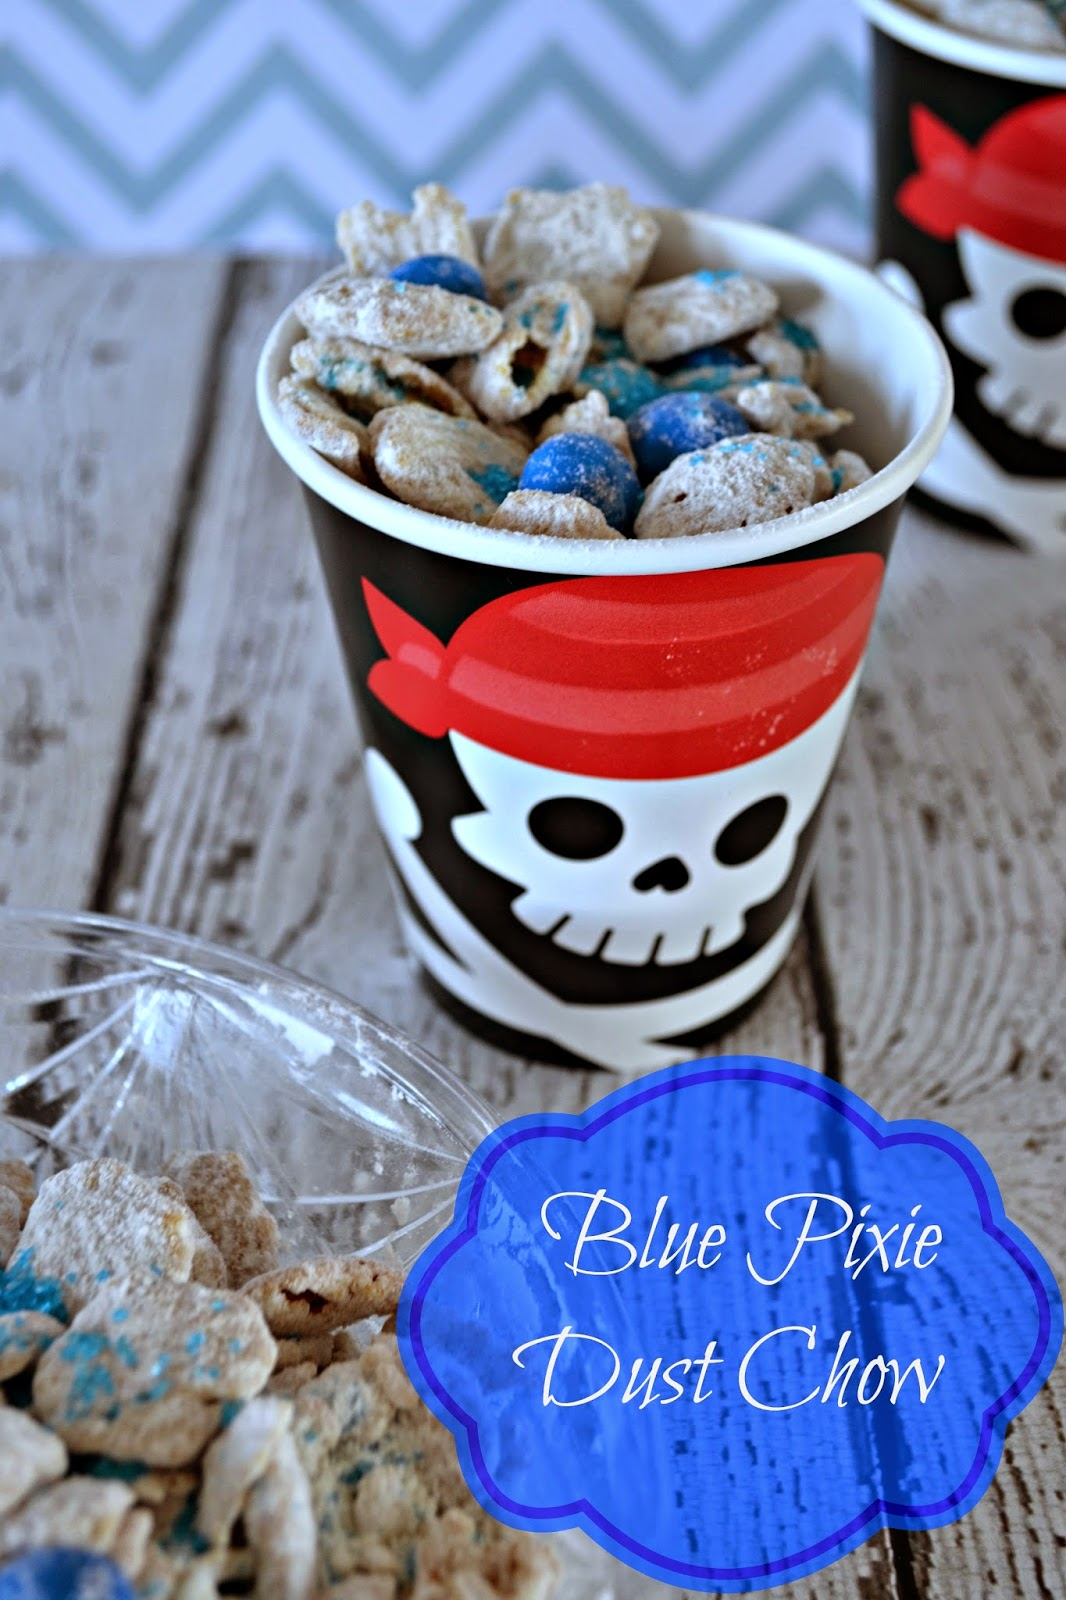 Easy Puppy Chow Recipe The Pirate Fairy DVD Release - Blue Pixie Dust Chow #Recipe - #ProtectPixieHollow #shop